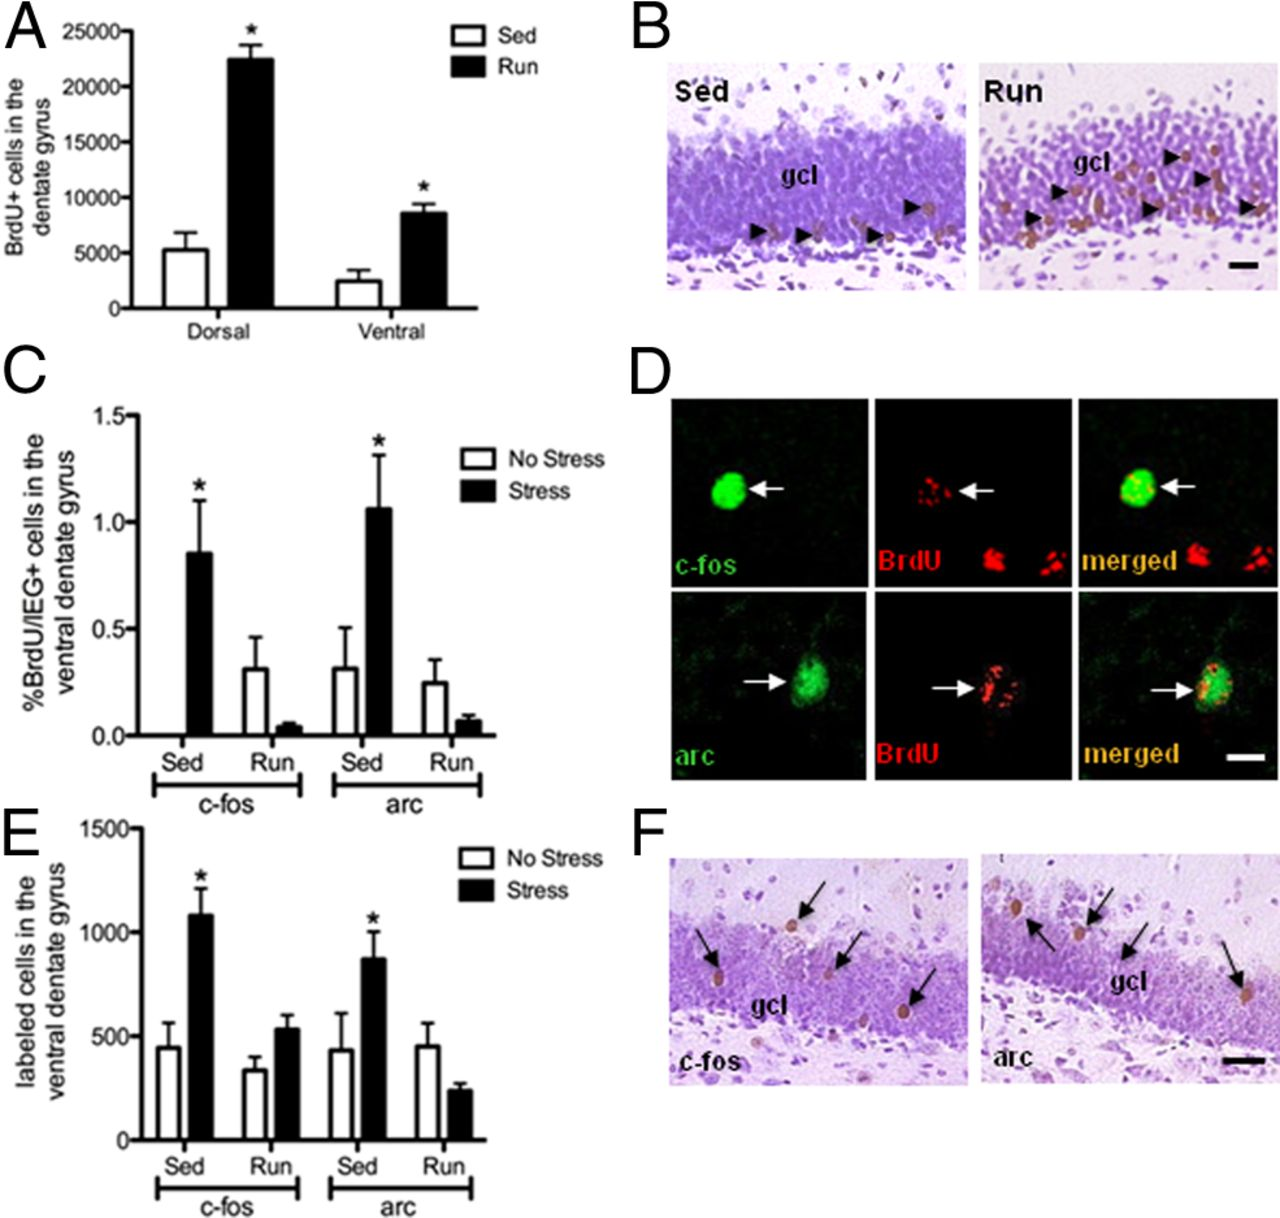 Physical Exercise Prevents Stress-Induced Activation of